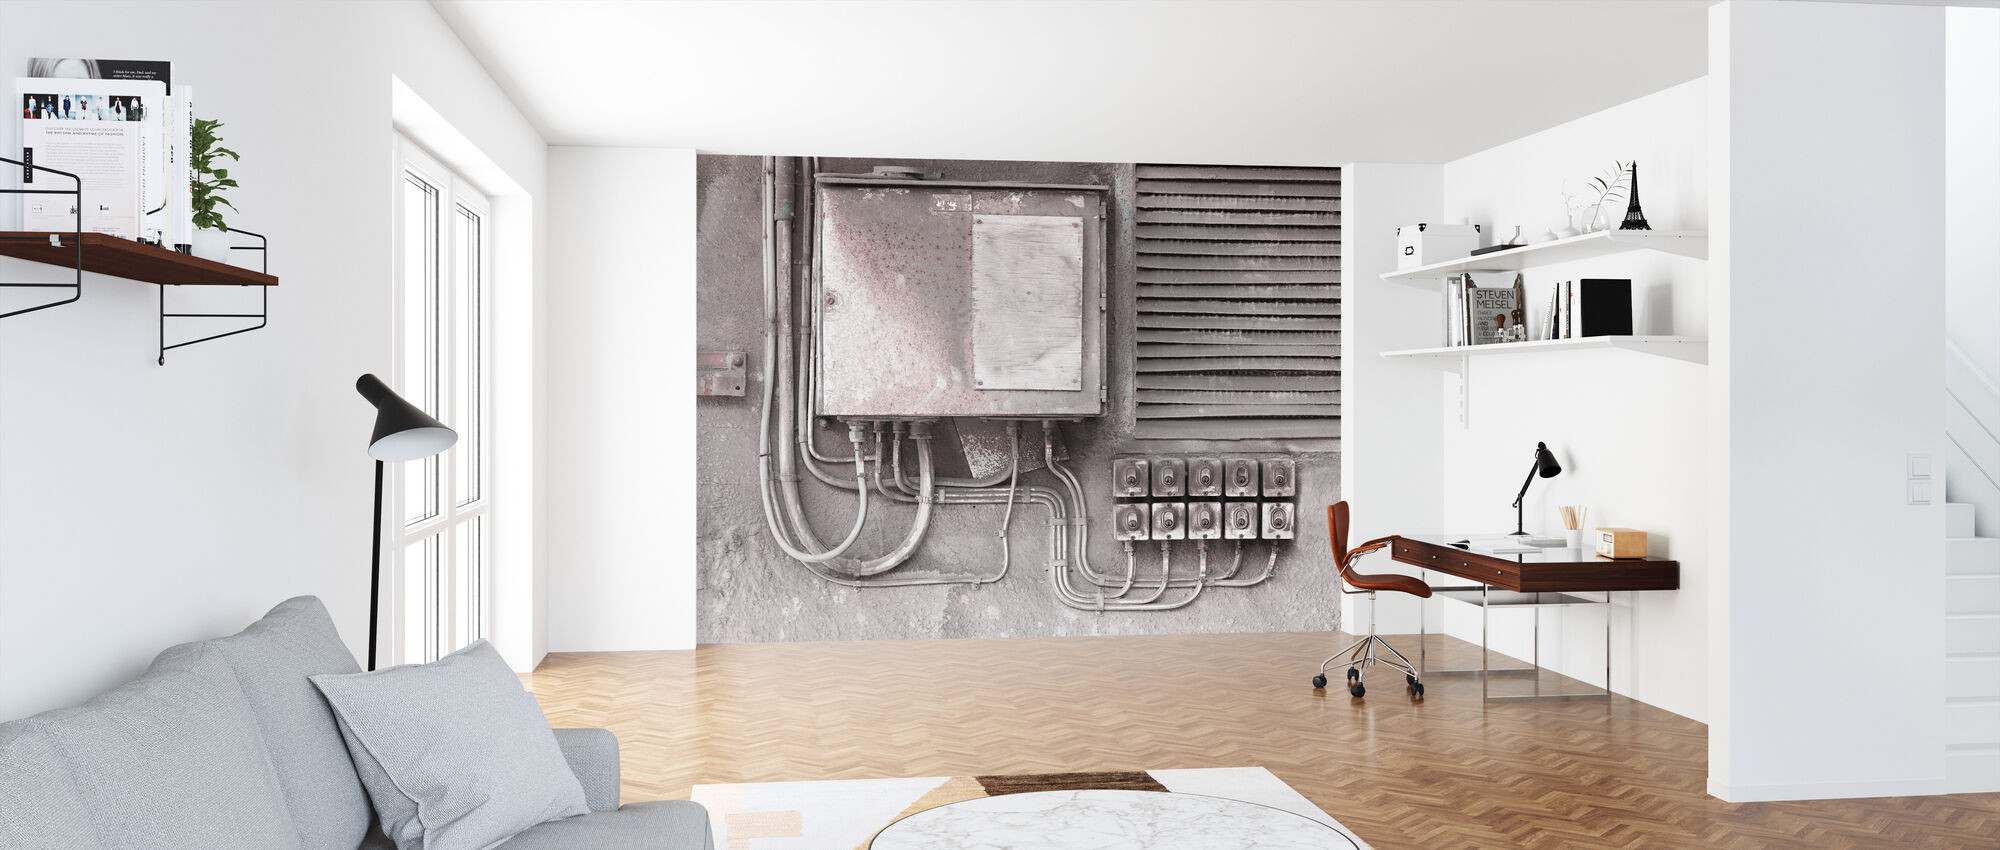 Old Technology - Wallpaper - Office